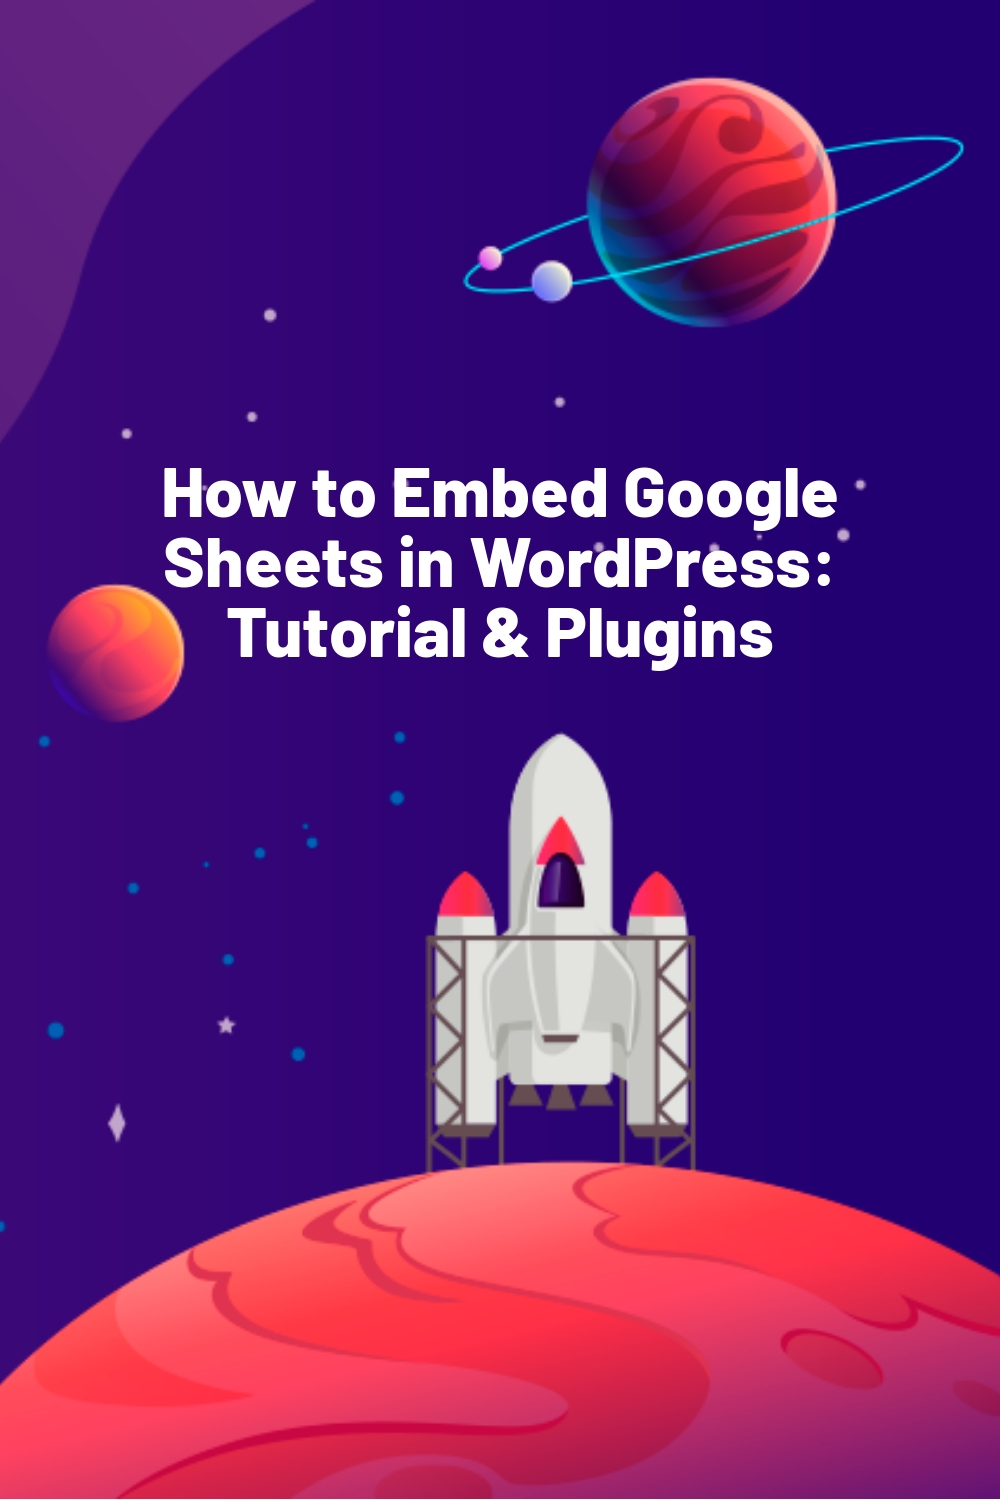 How to Embed Google Sheets in WordPress: Tutorial & Plugins